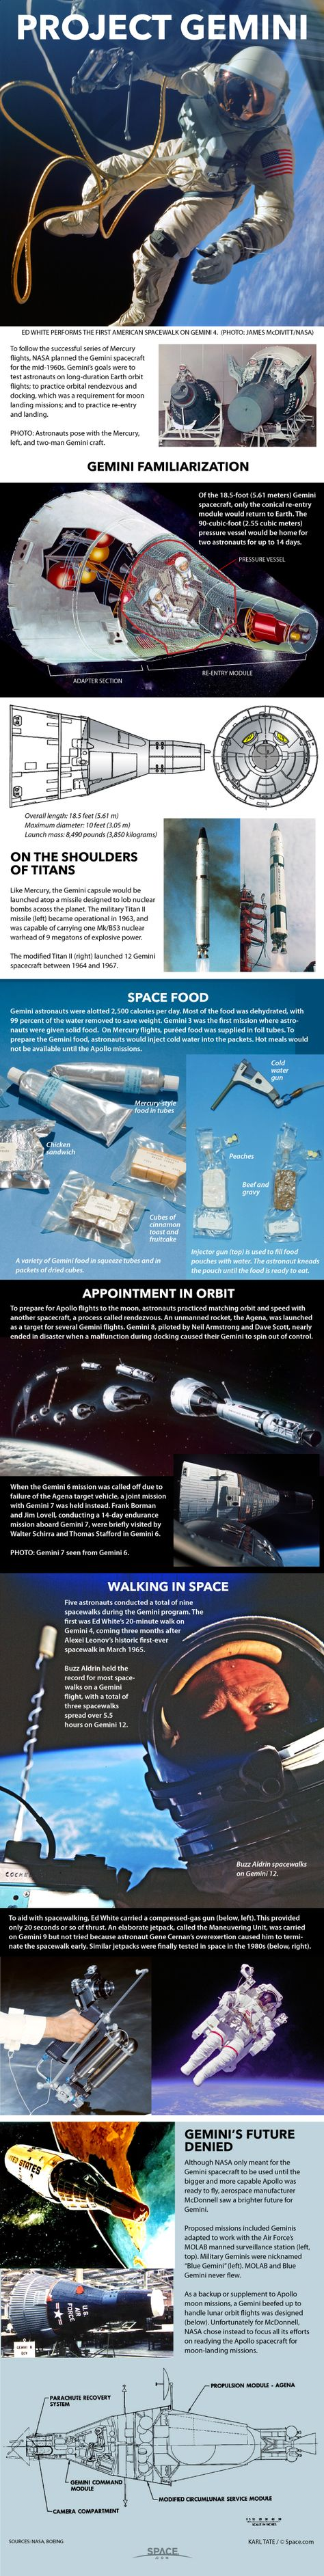 Paving the way for Apollo's missions to the moon, the Gemini program provided much-needed experience for astronauts in space.